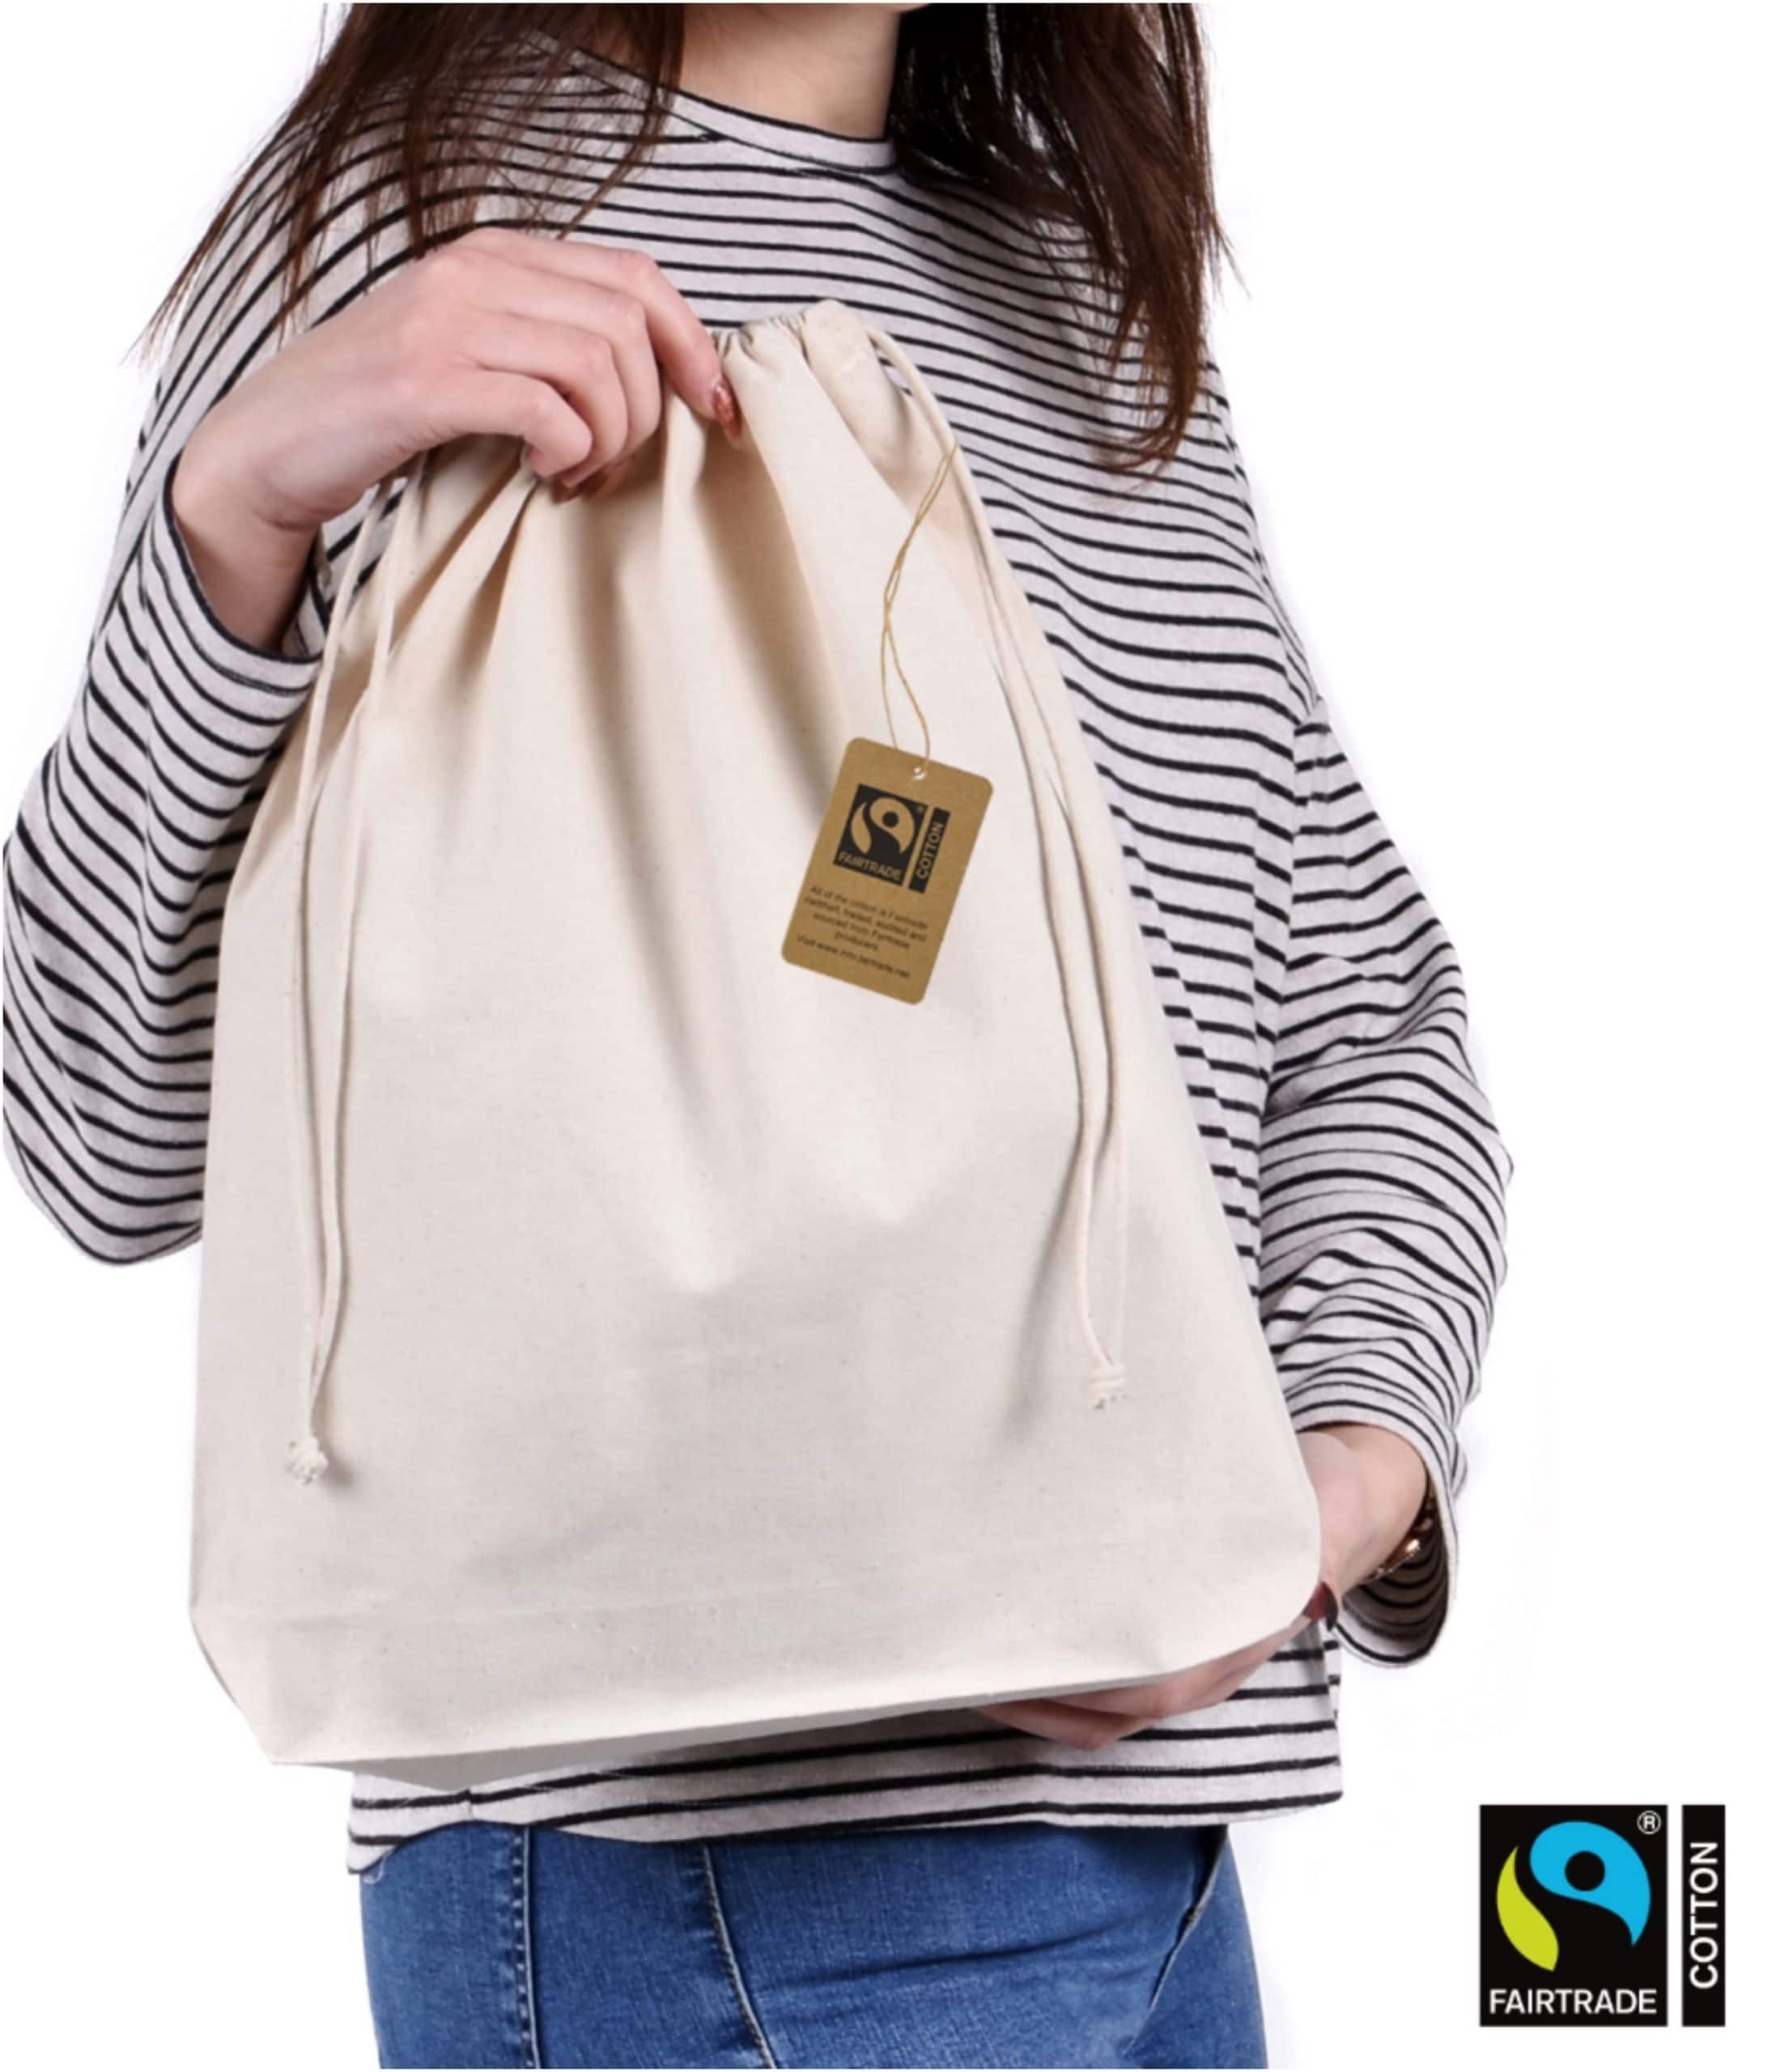 FTO L Drawstring bag WITH FT LOGO